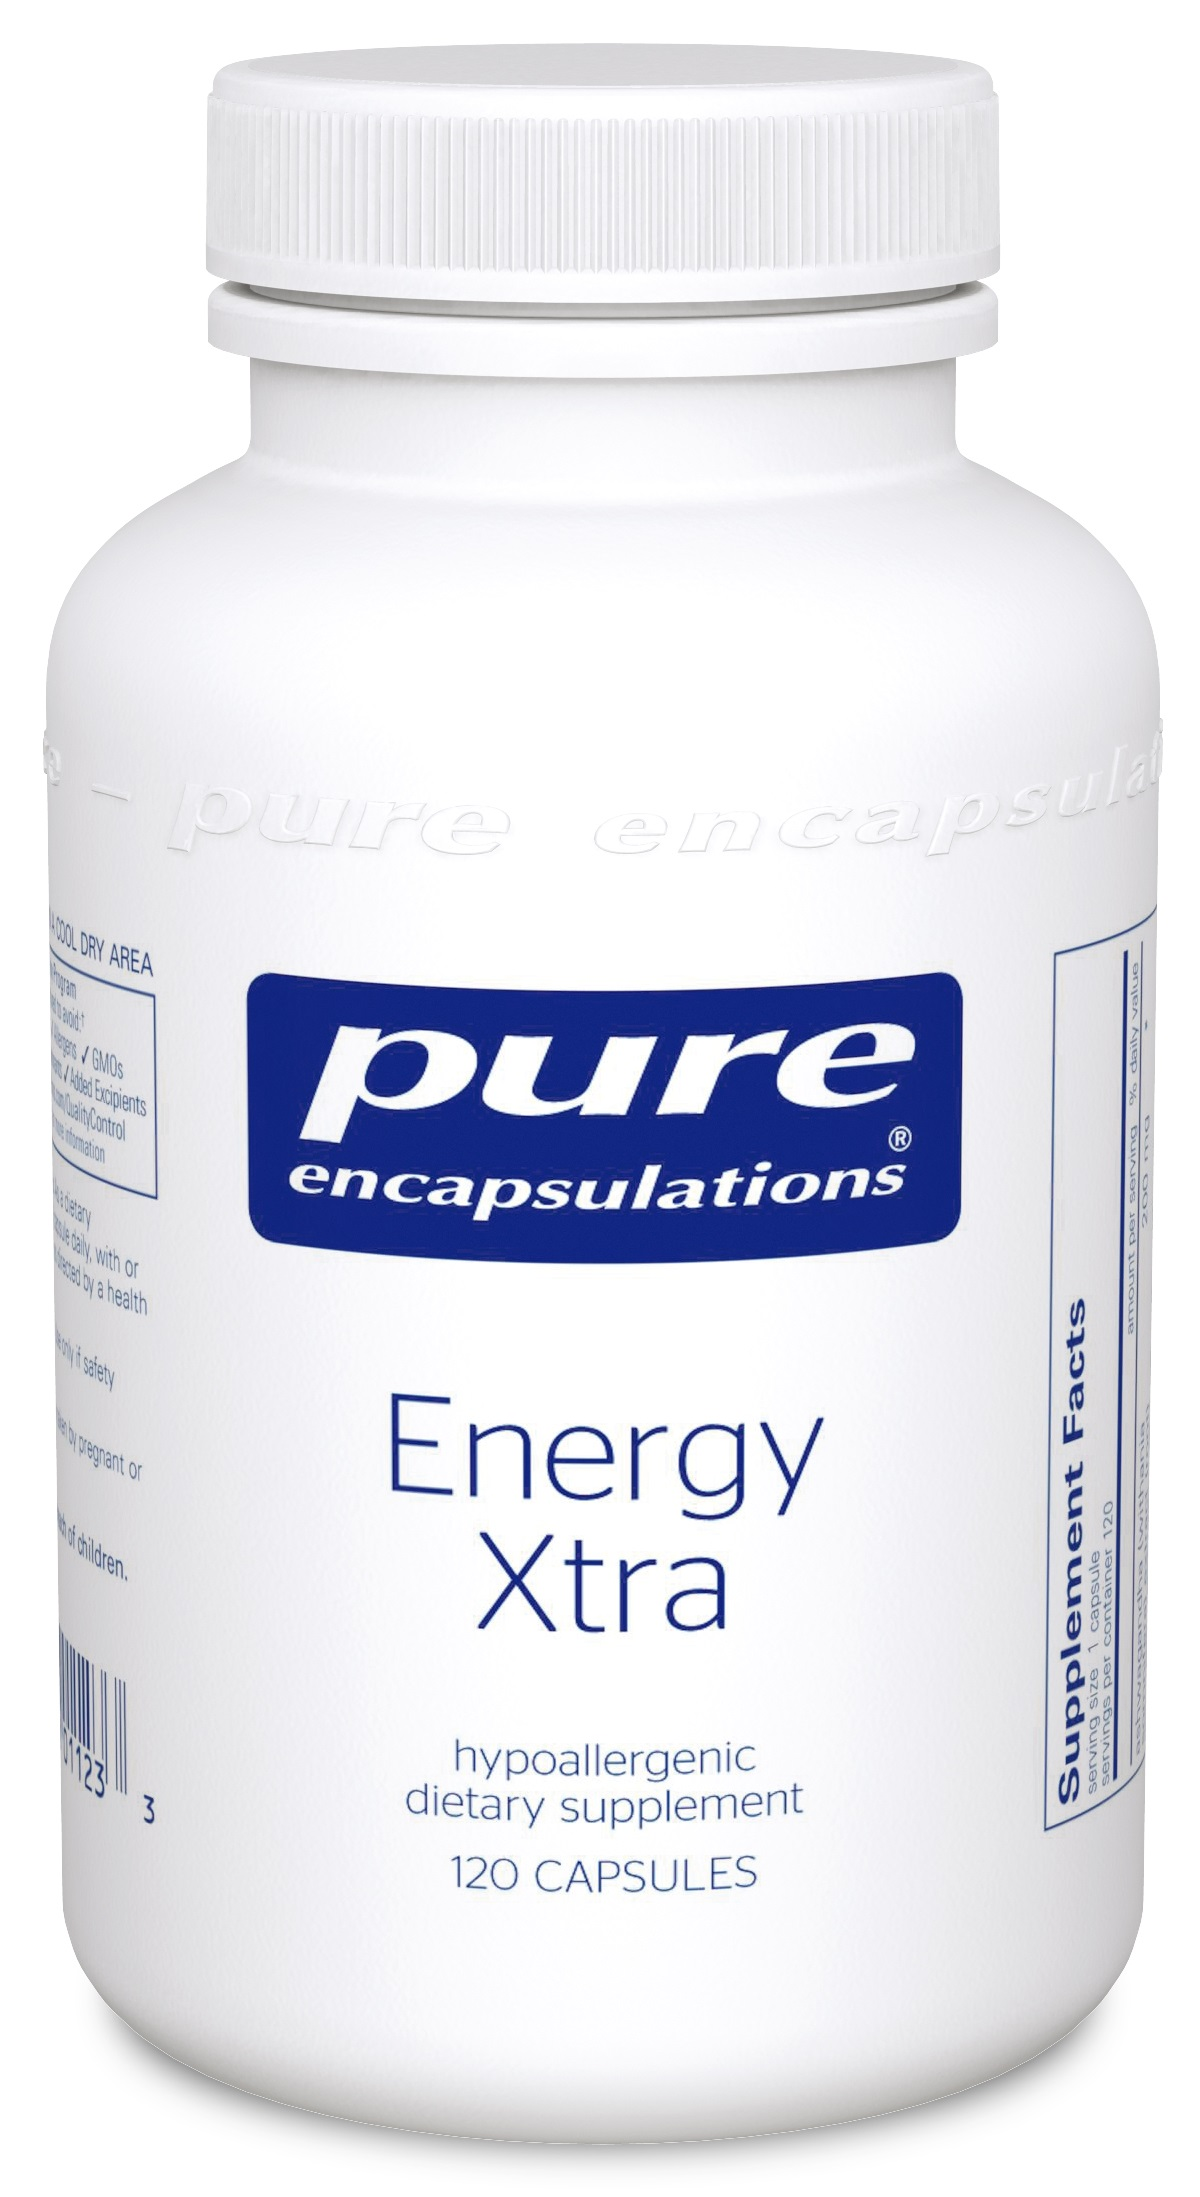 Pure Encapsulations Energy Xtra - IMPROVED